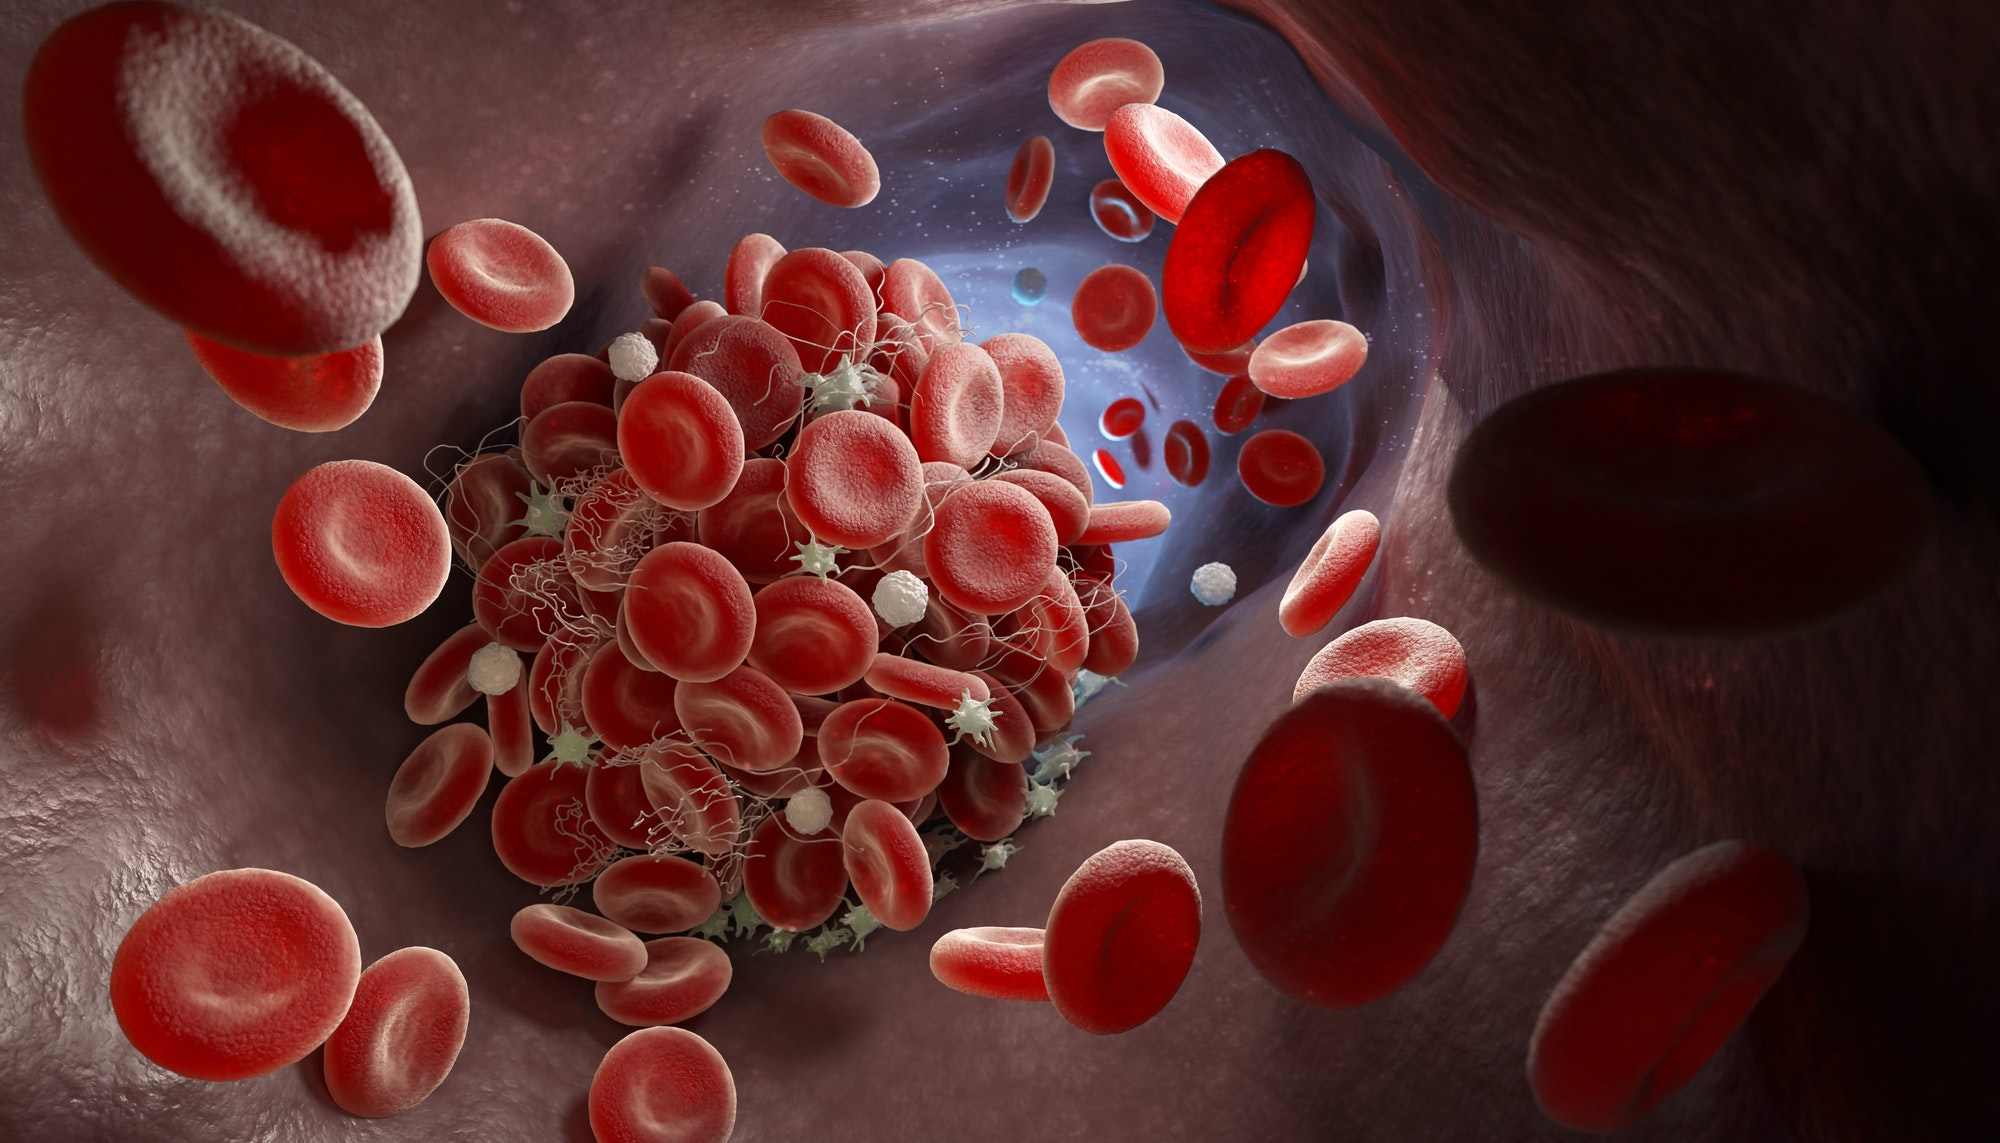 7 Foods To Prevent A Deadly Blood Clot